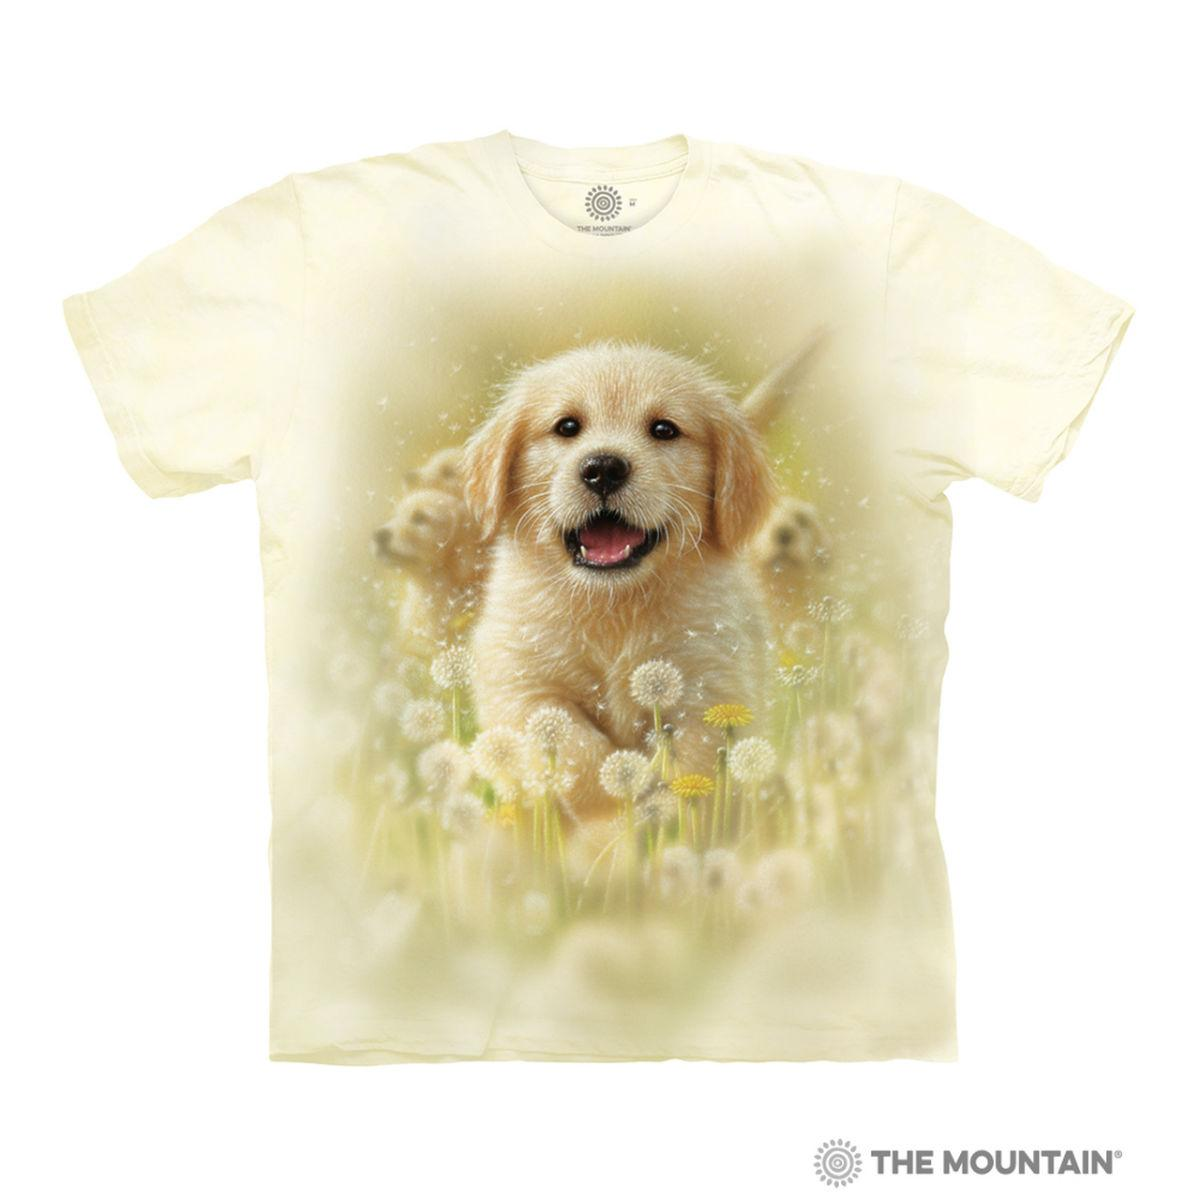 Golden Puppy Human T-Shirt by The Mountain